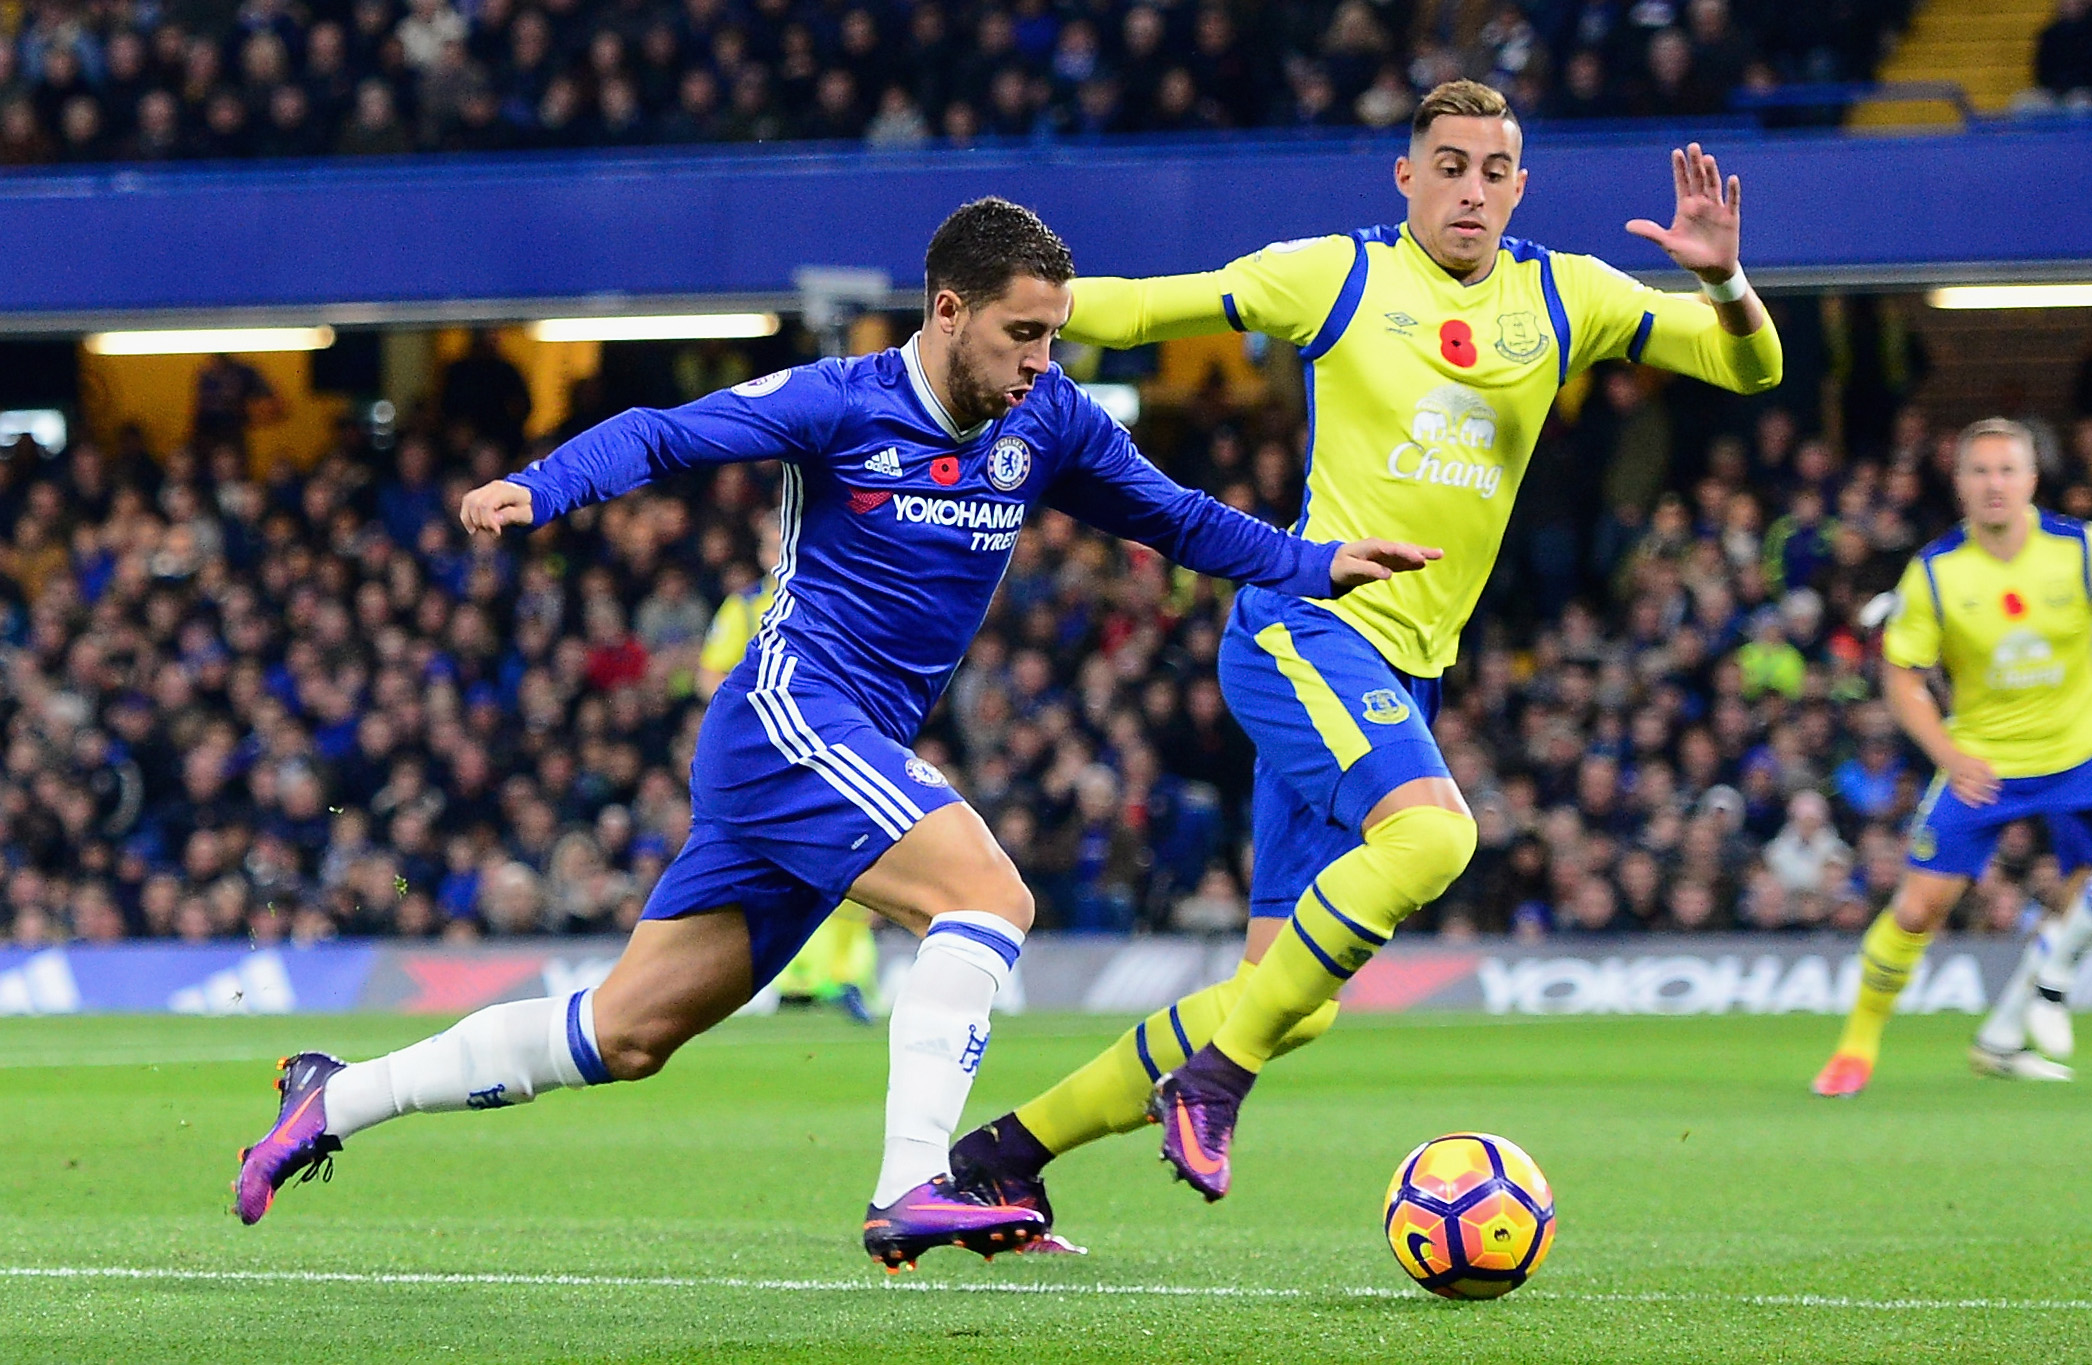 Chelsea v Everton: Eden Hazard leads Blues to crushing ...